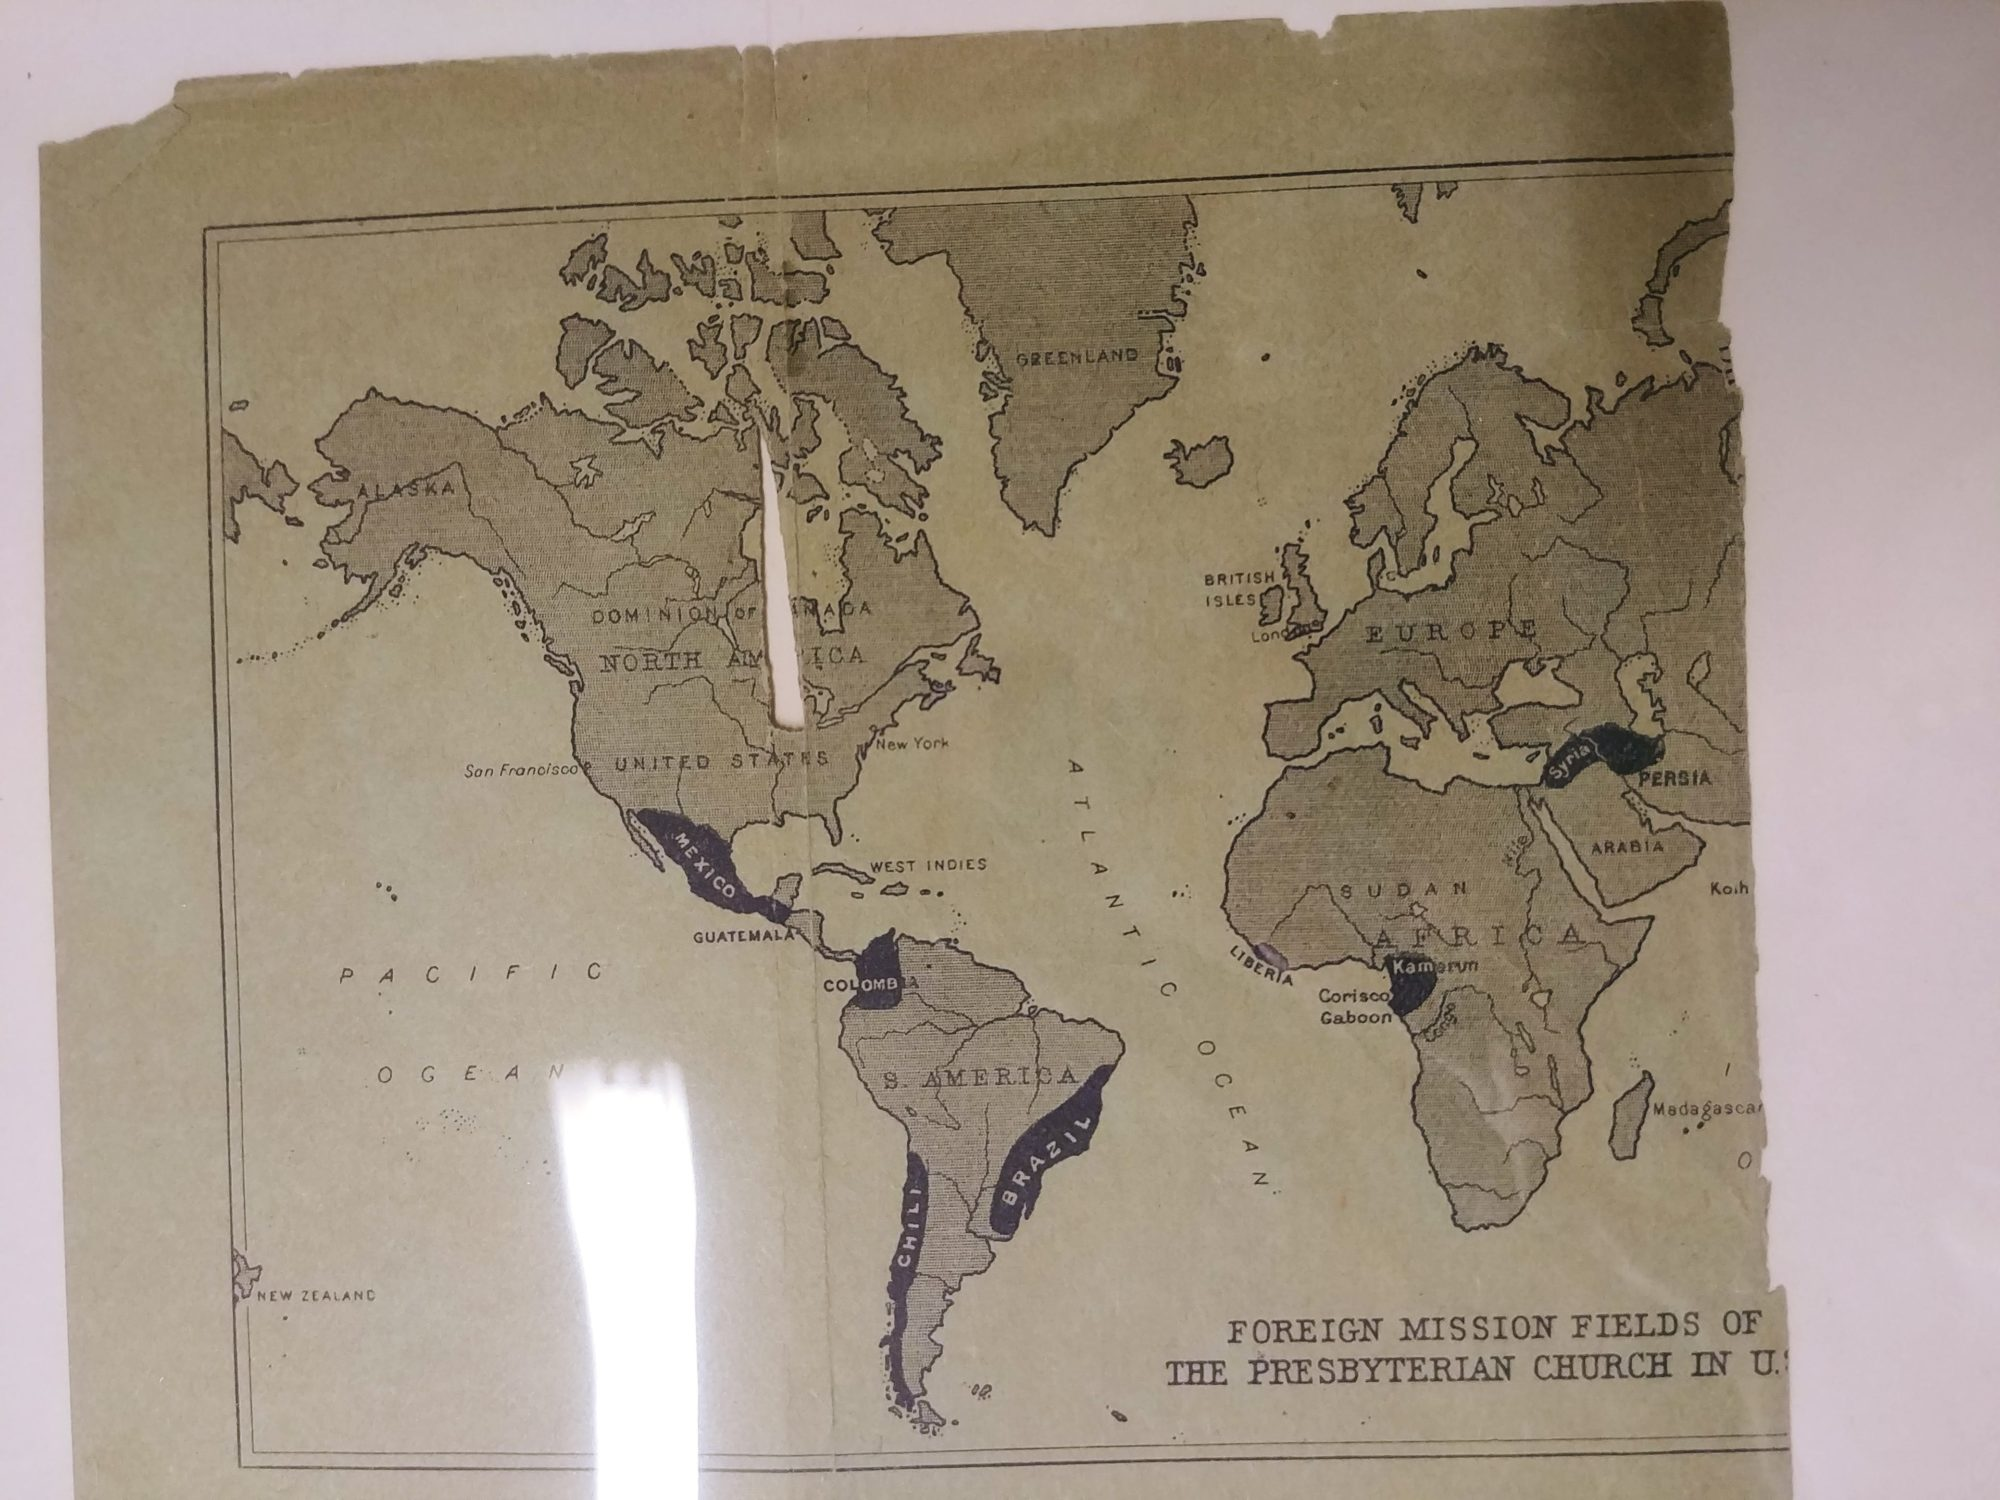 image early 20th century map of Presbyterian Mission Fields around the world